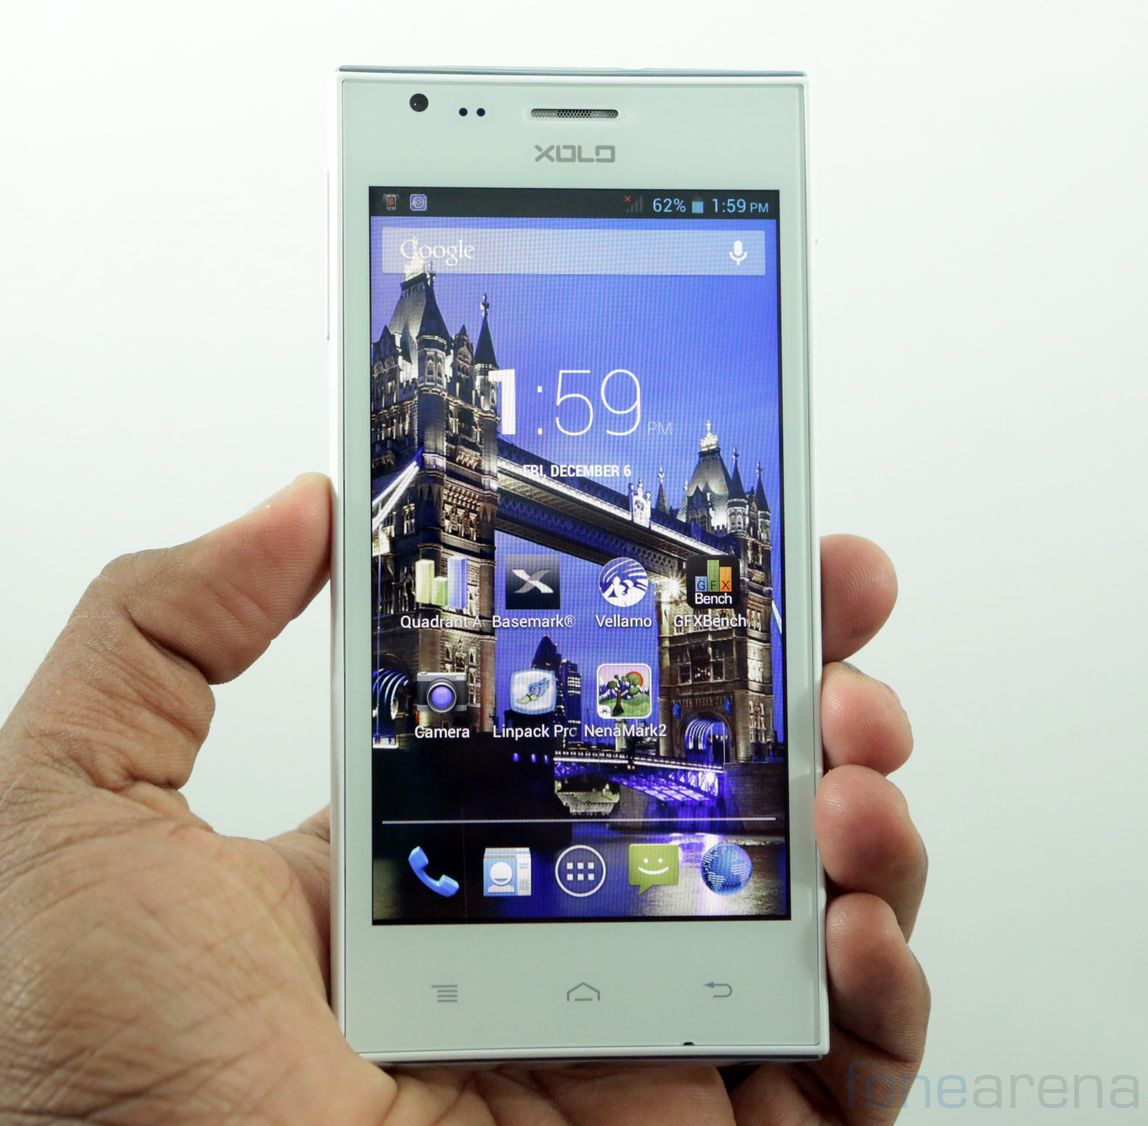 xolo a600 photo gallery best technology on your screen